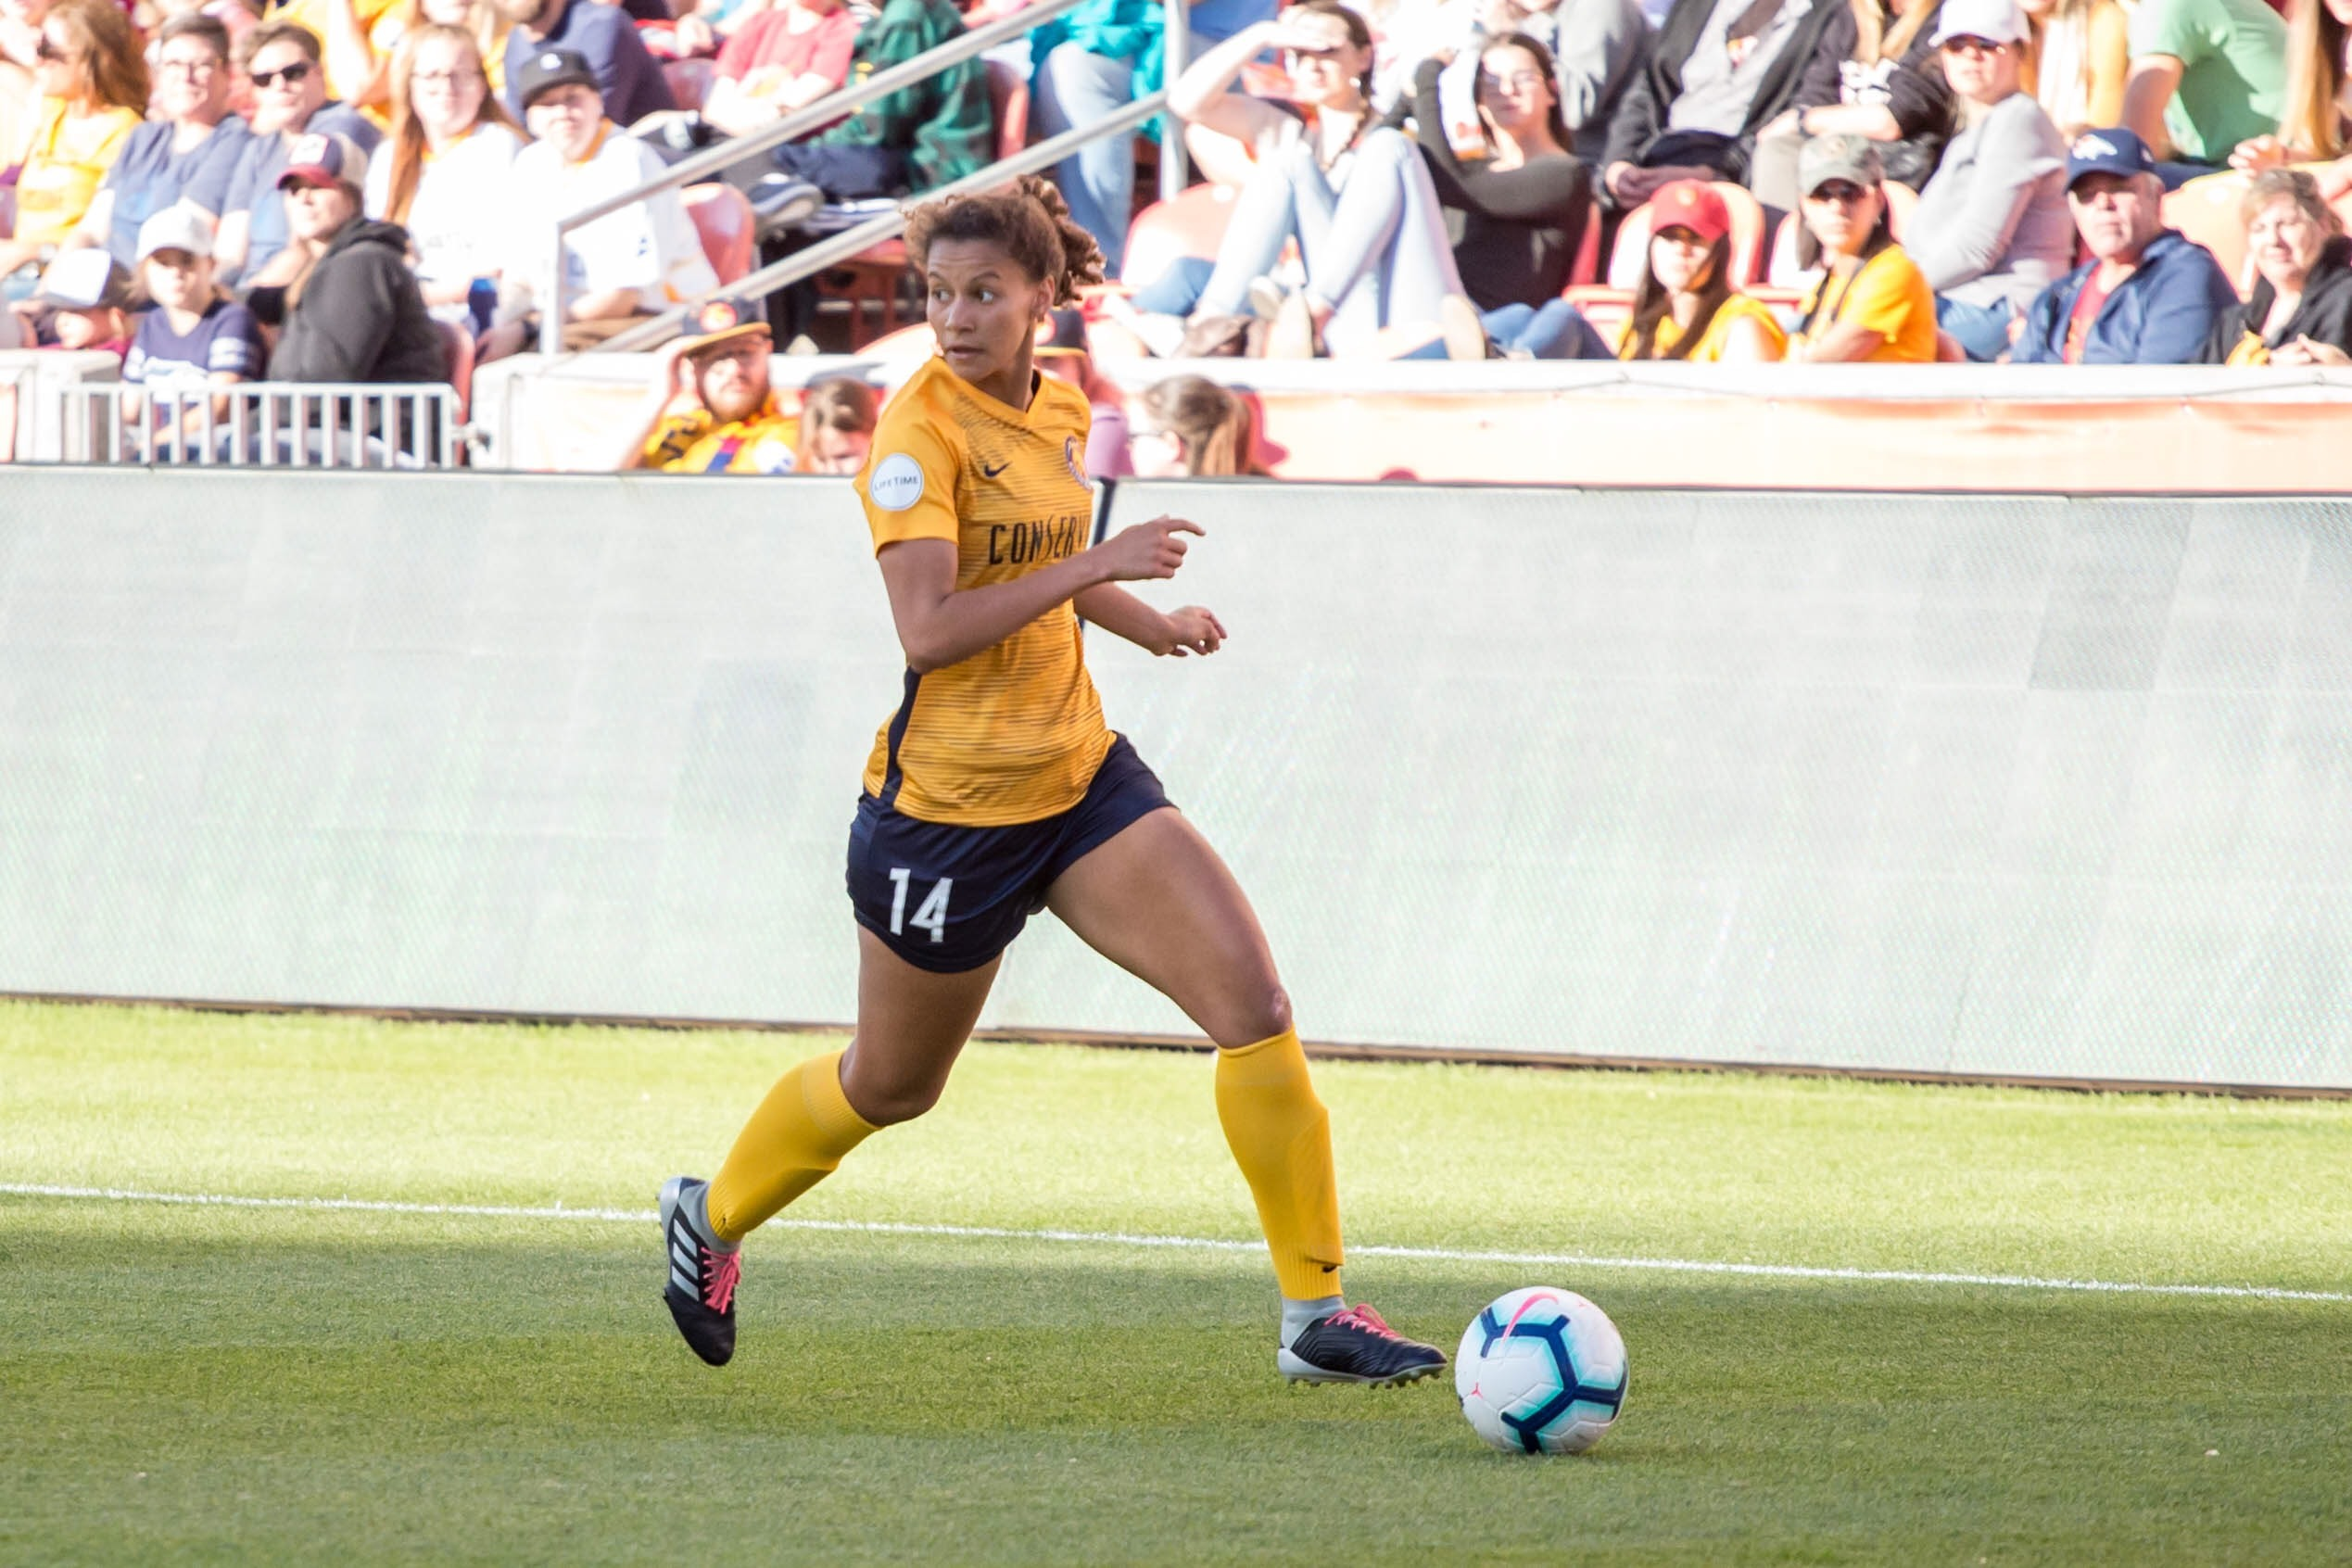 Utah Royals FC rookie center back Gaby Vincent dribbles the ball during a game against the Orlando Pride on May 25, 2019 at Rio Tinto Stadium in Sandy, Utah.